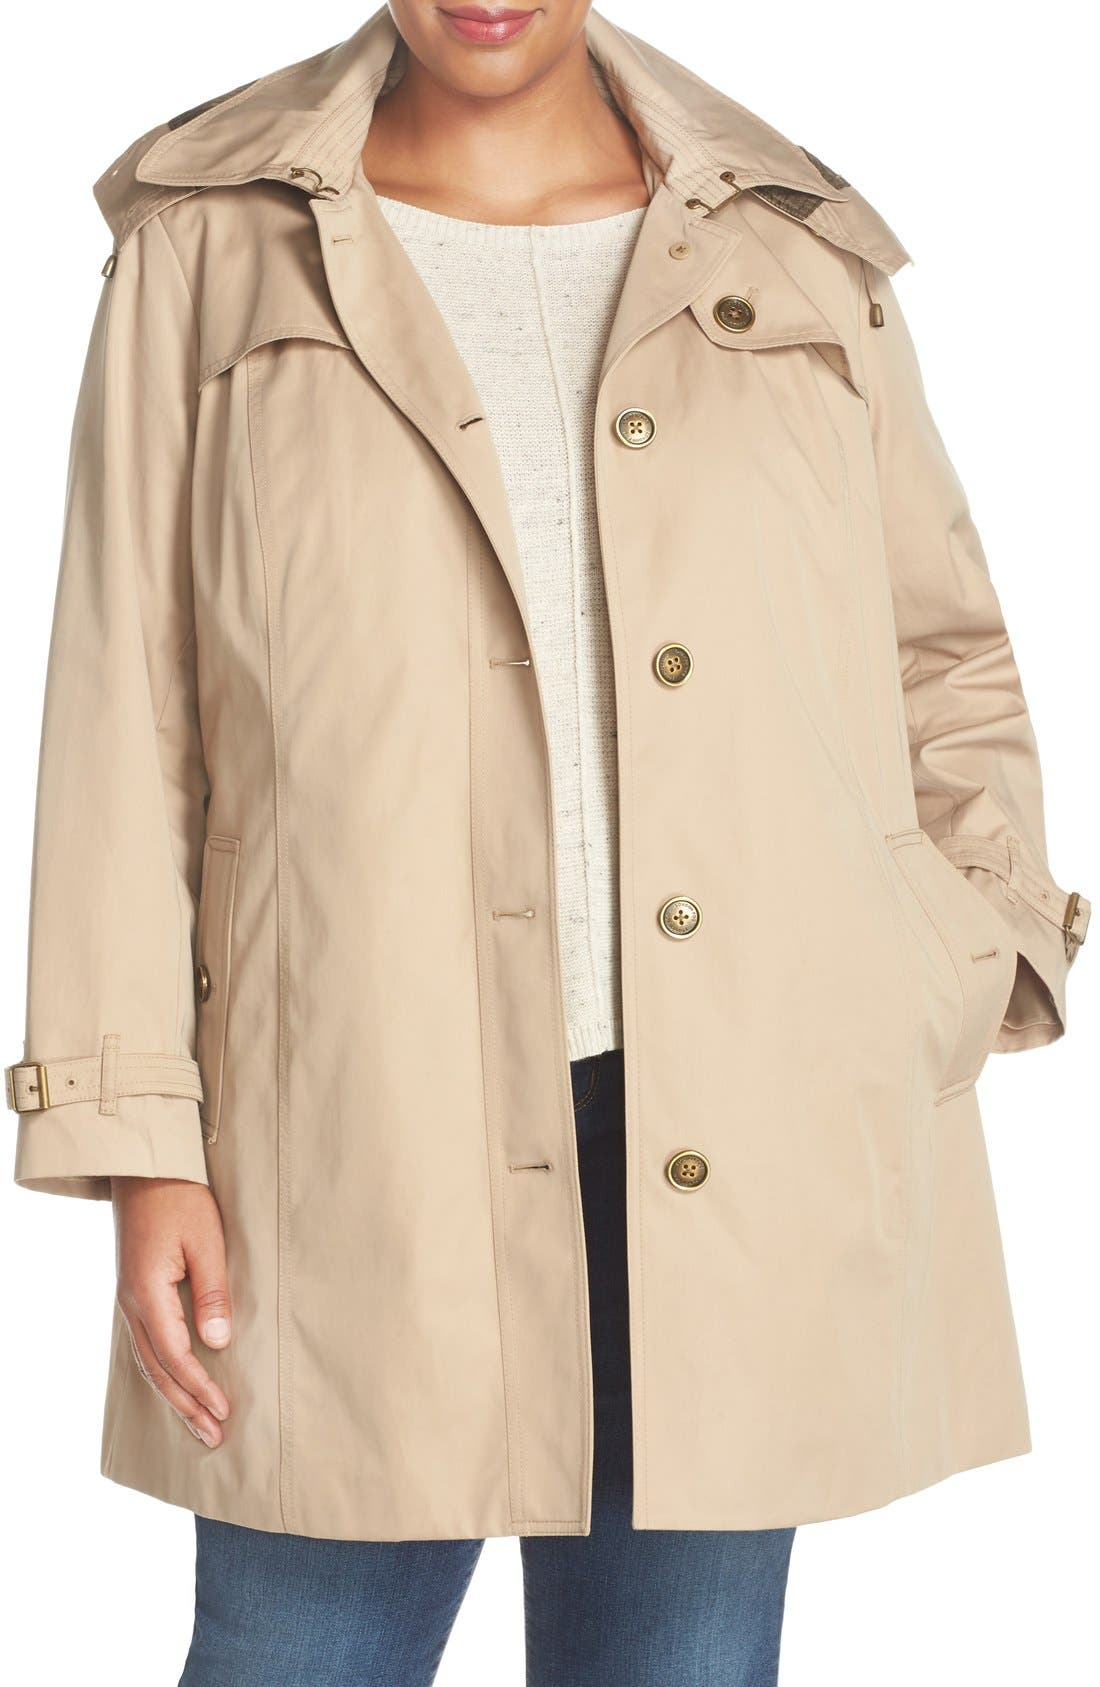 London Fog Single Breasted Trench Coat (Plus Size)